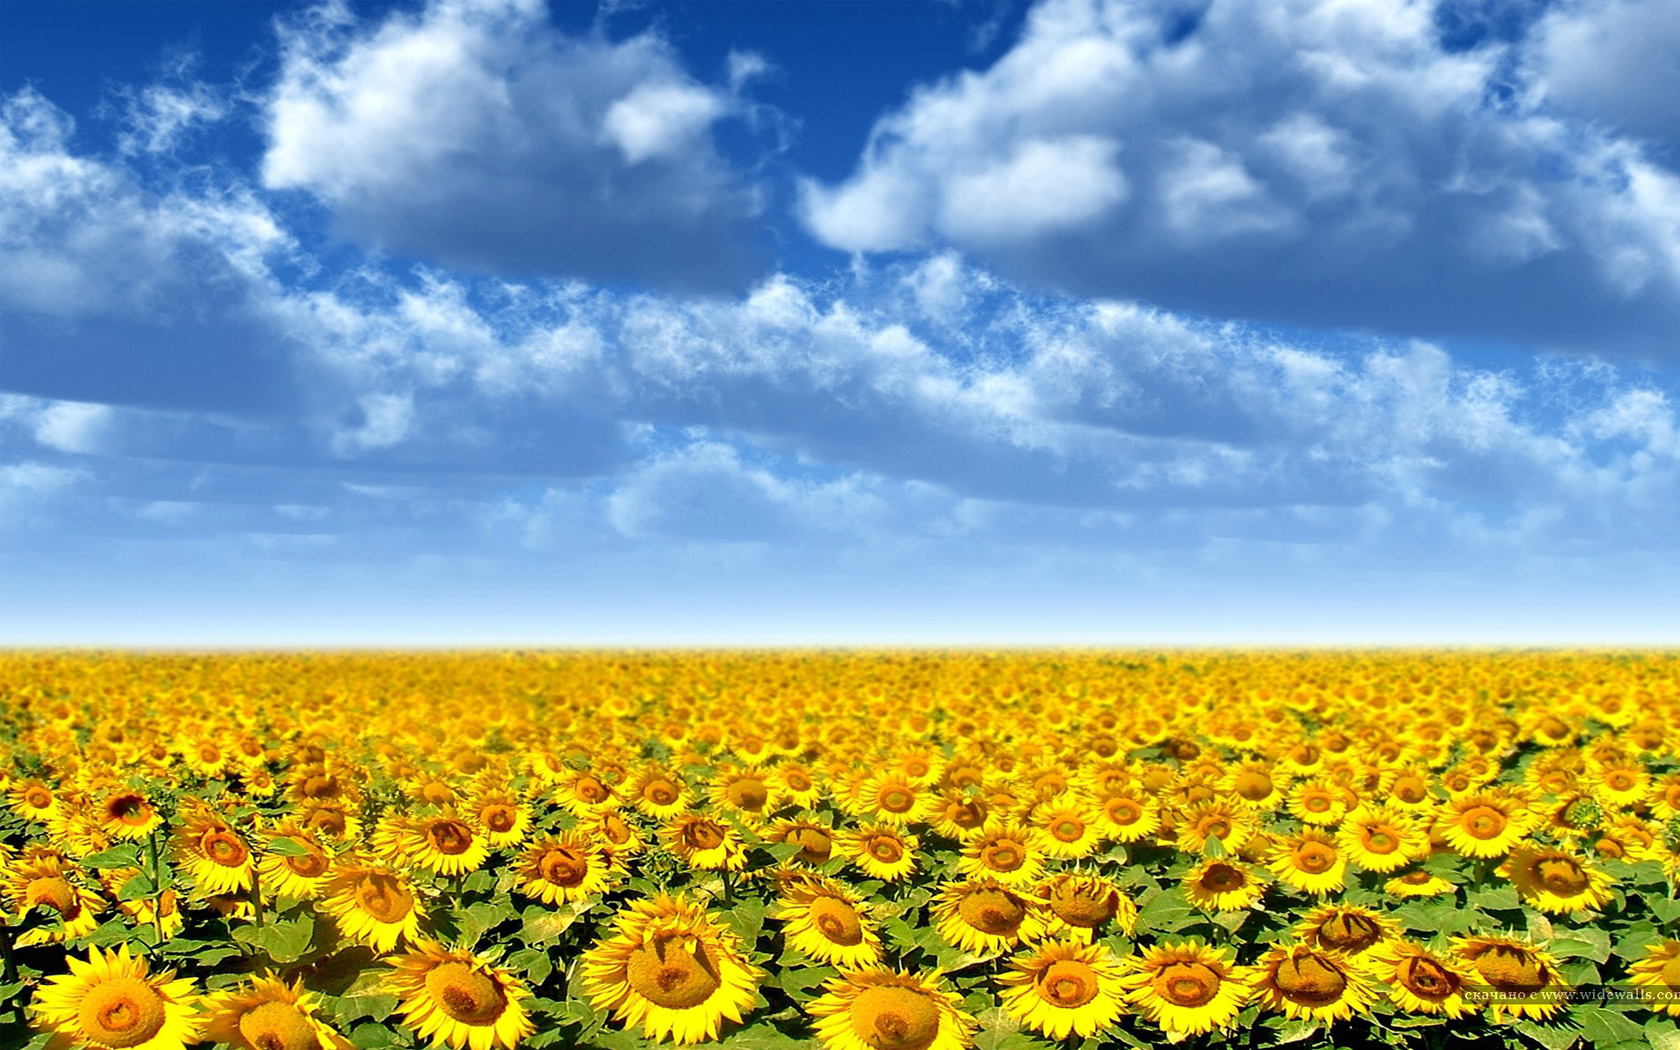 Sunflower Futures  by William Carney